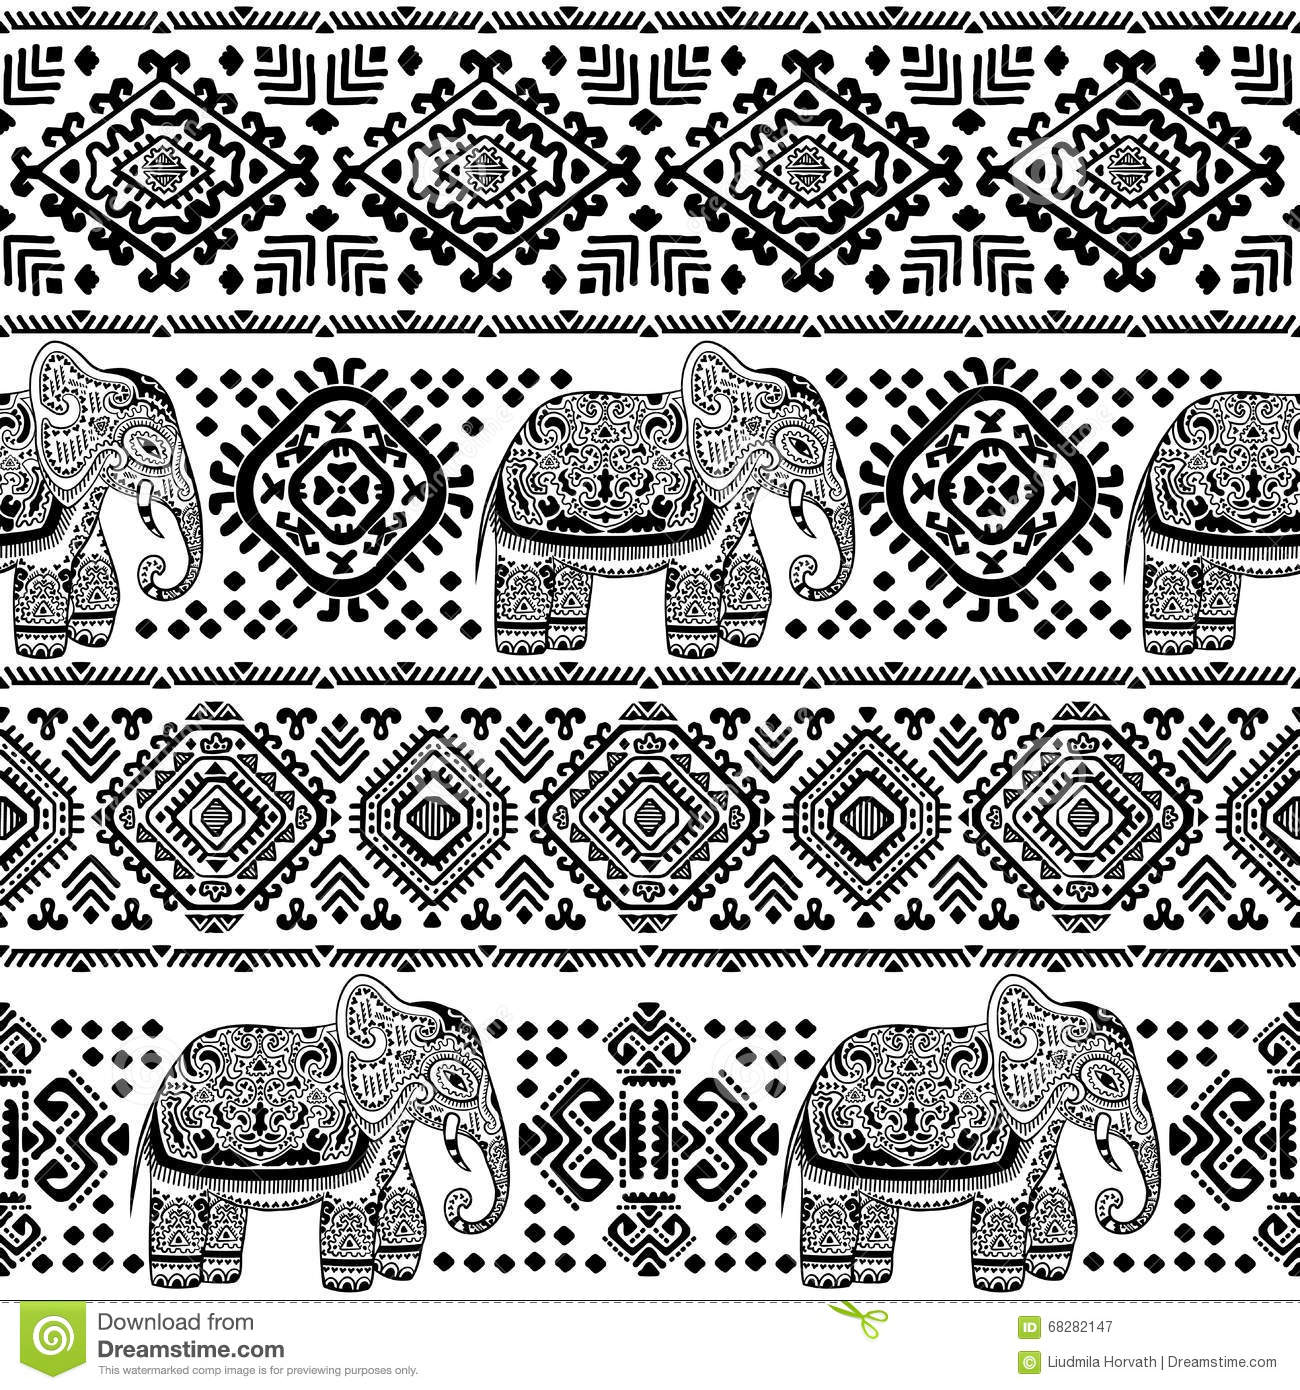 Aztec Print Wallpaper Hd Vintage Indian Elephant Seamless Pattern With Tribal